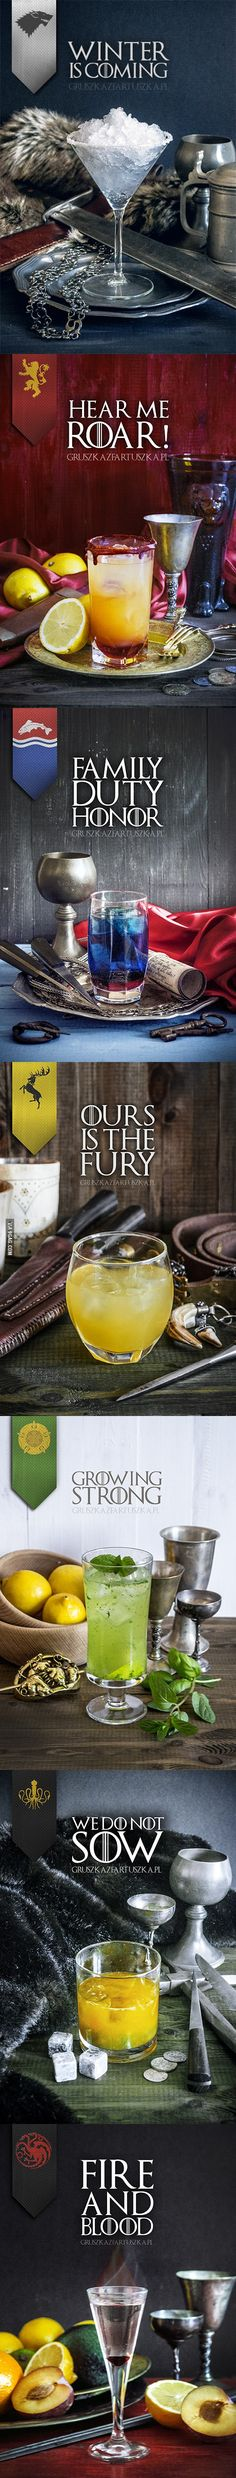 GAME OF THRONES 1)100ml tonic,30ml gin,1tsp  lemon juice 2)20ml grenadine, 100ml mango juice,70ml light rhum, ice 3)40ml strawberry syrup,50ml Blue Curacao liqueur,100ml Sprite,ice 4)50ml water,50ml  honey,50ml gin,30ml lemon juice,30ml orange juice, ice 5)4 mint leafs,4 basil leafs, 1 spoon sugar, 50ml lime juice, 80ml gin, 50-80 ml tonic,ice  6)1/3 tbsp grated ginger,3 slices of orange,15 ml lemon juice,30ml Cointreau, 60ml whisky. 7) drops  grenadine, 30ml clear, strong rum, a shred of…